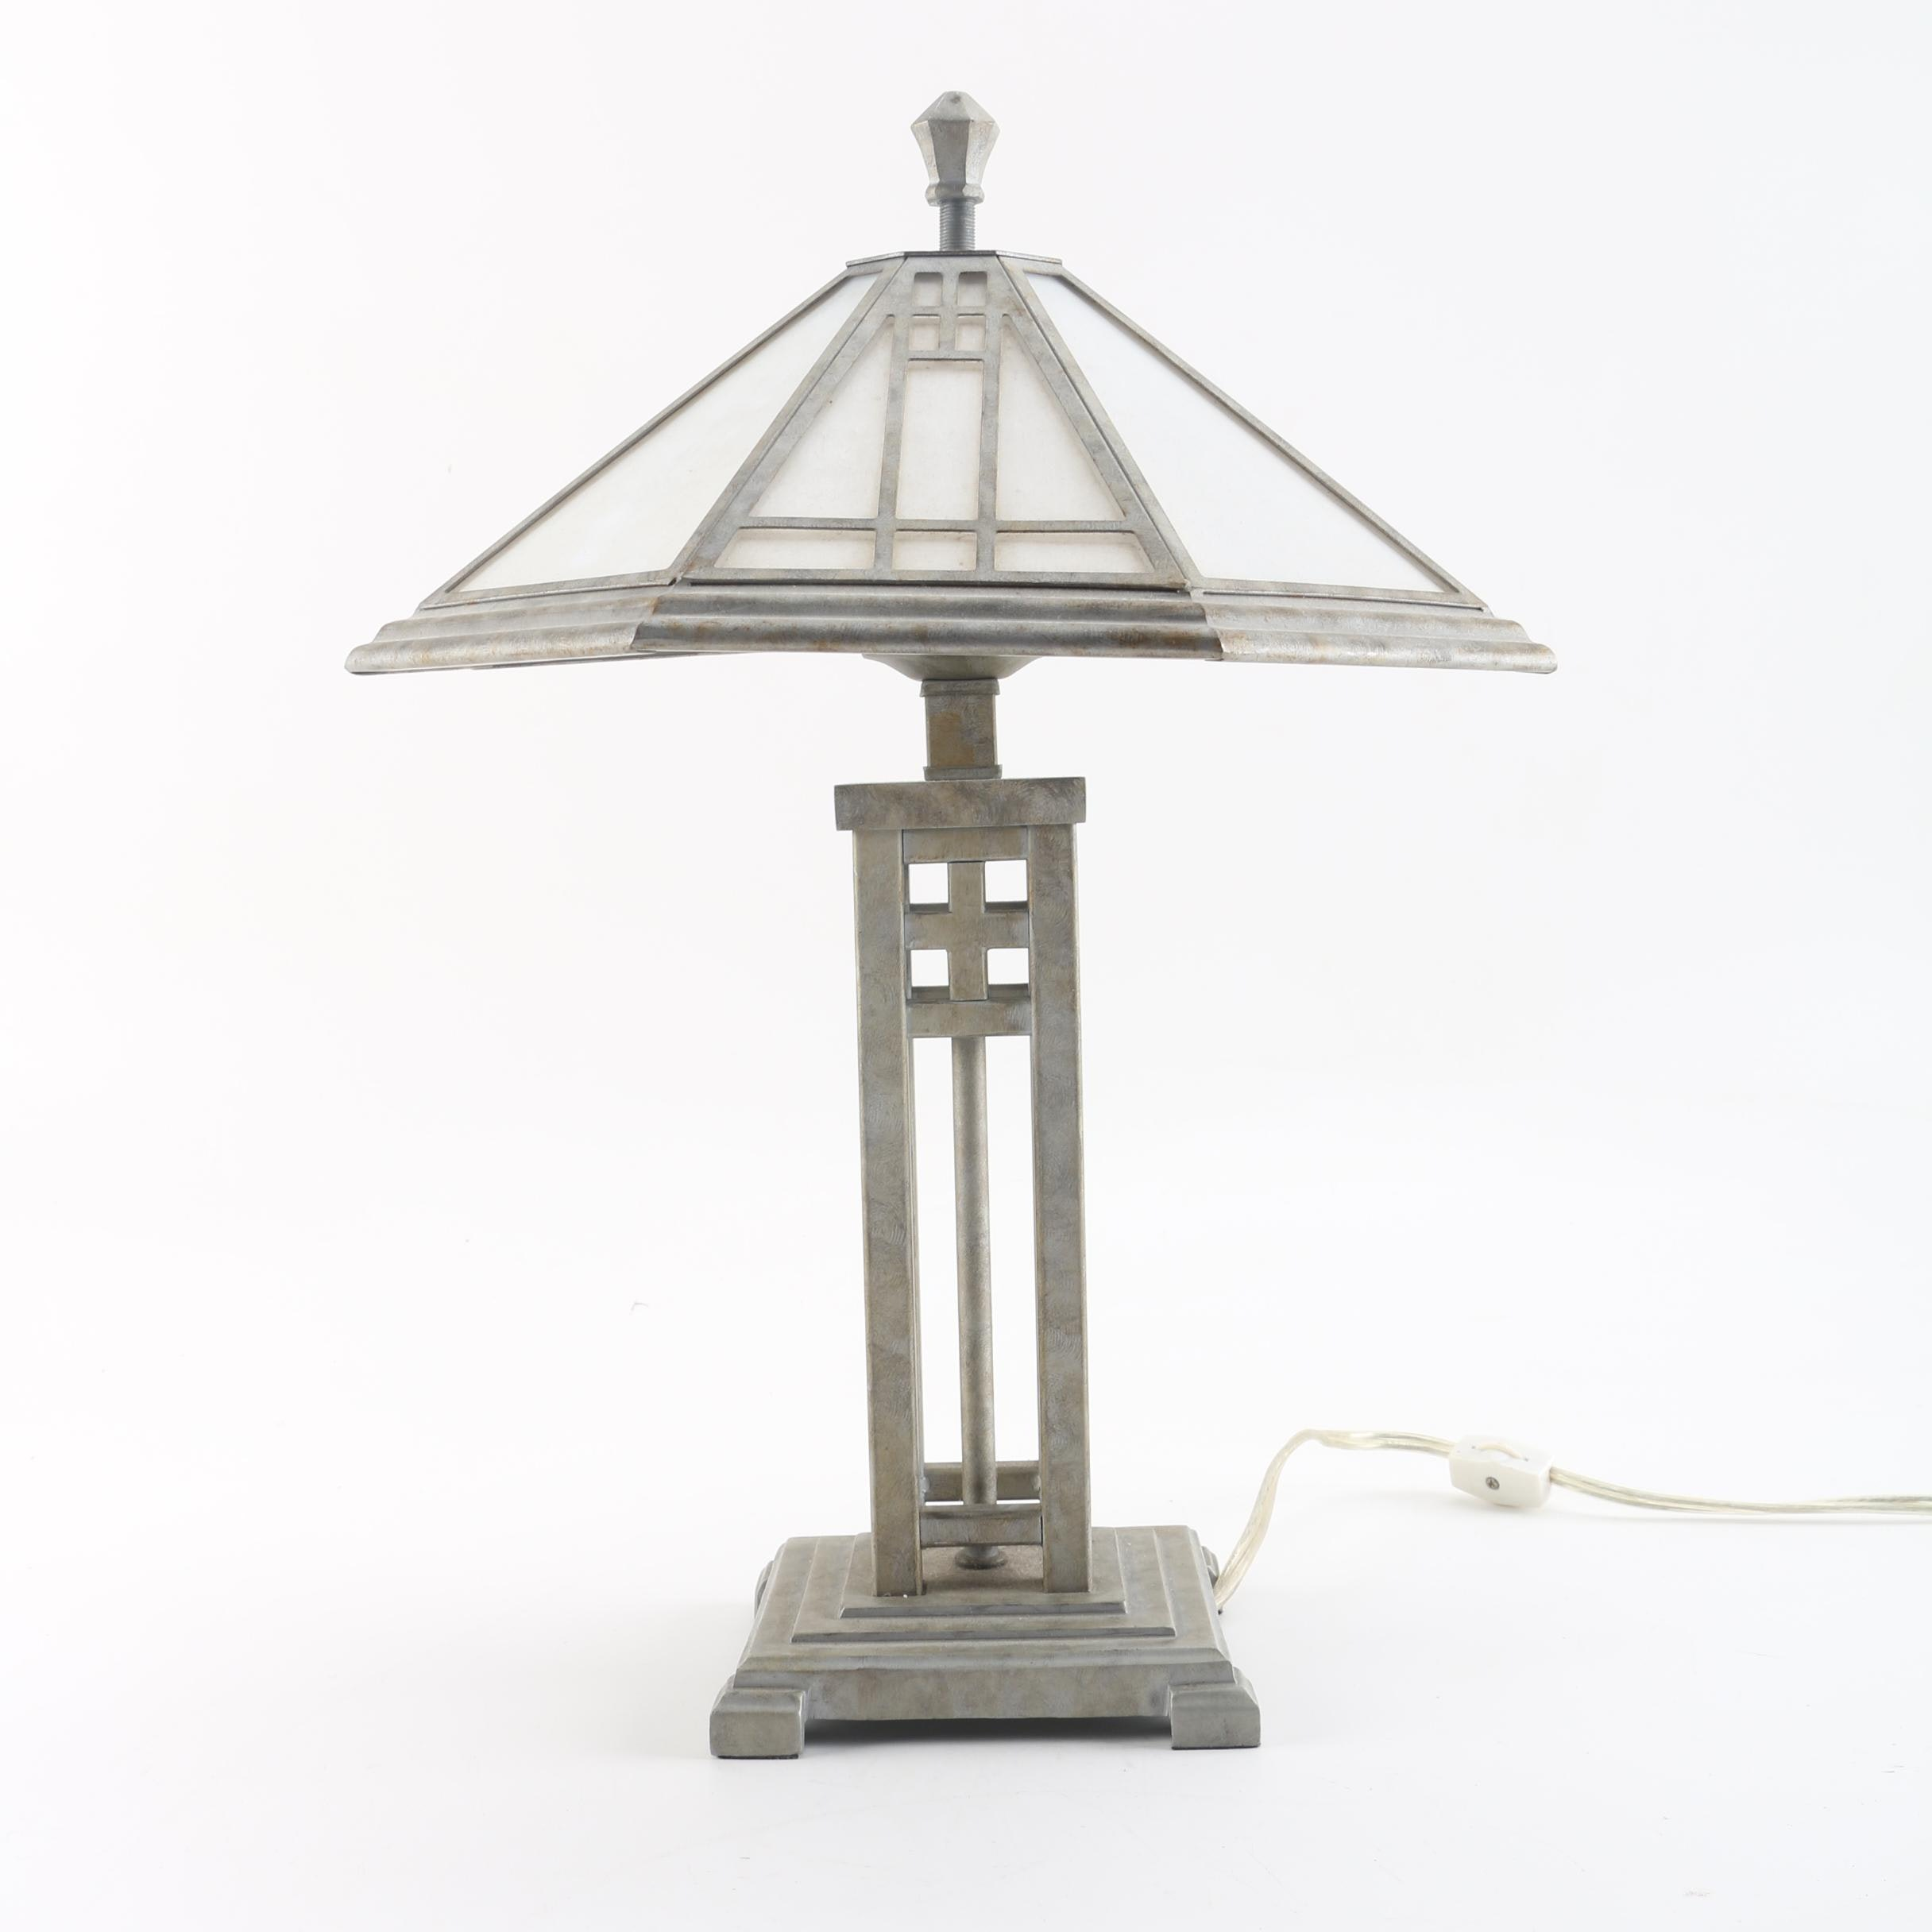 Contemporary Arts and Crafts Style Table Lamp with Glass and Metal Shade